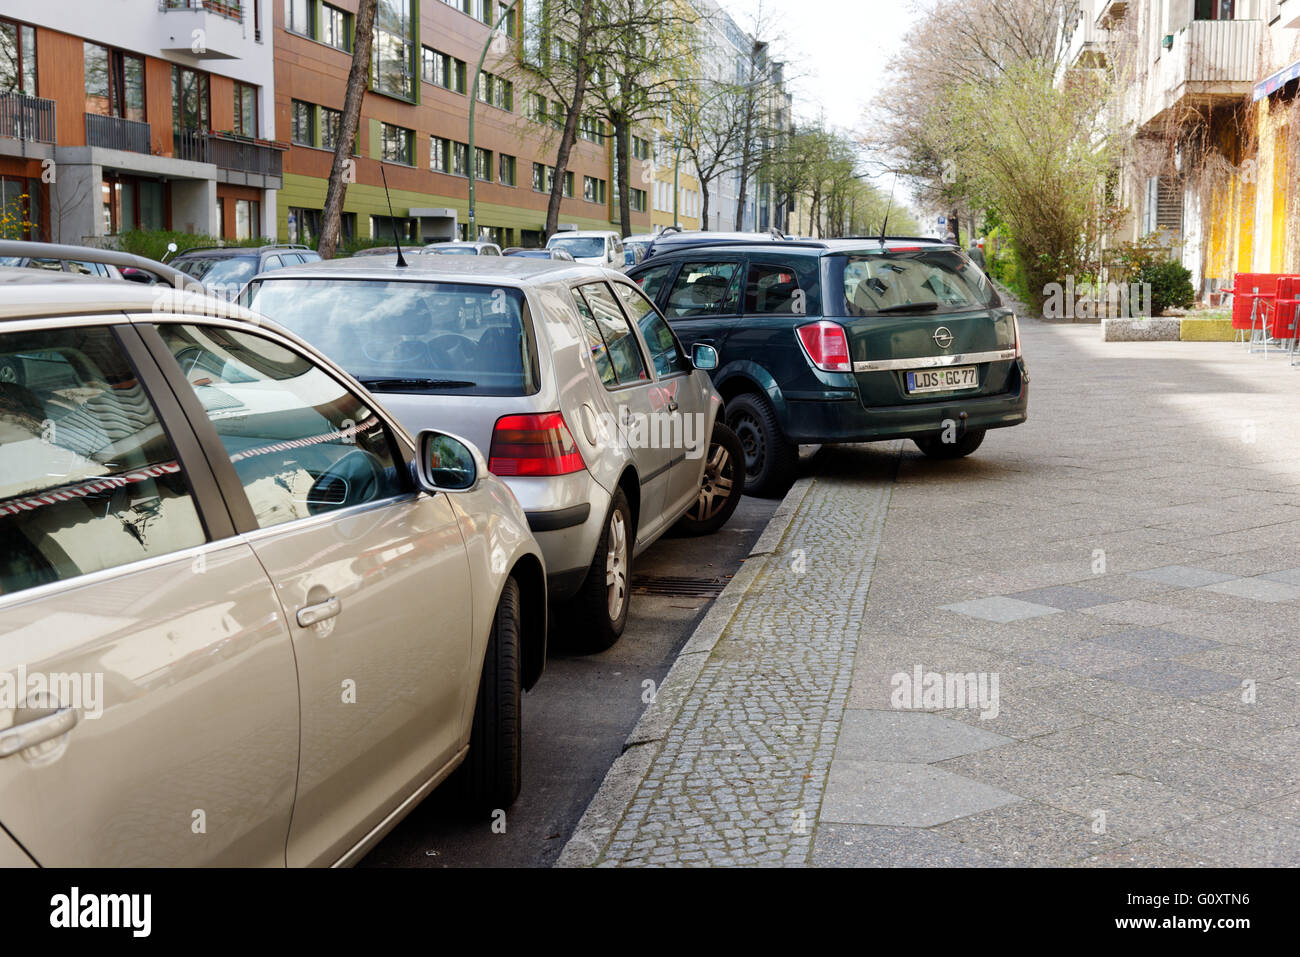 Bad parking in Berlin - Stock Image